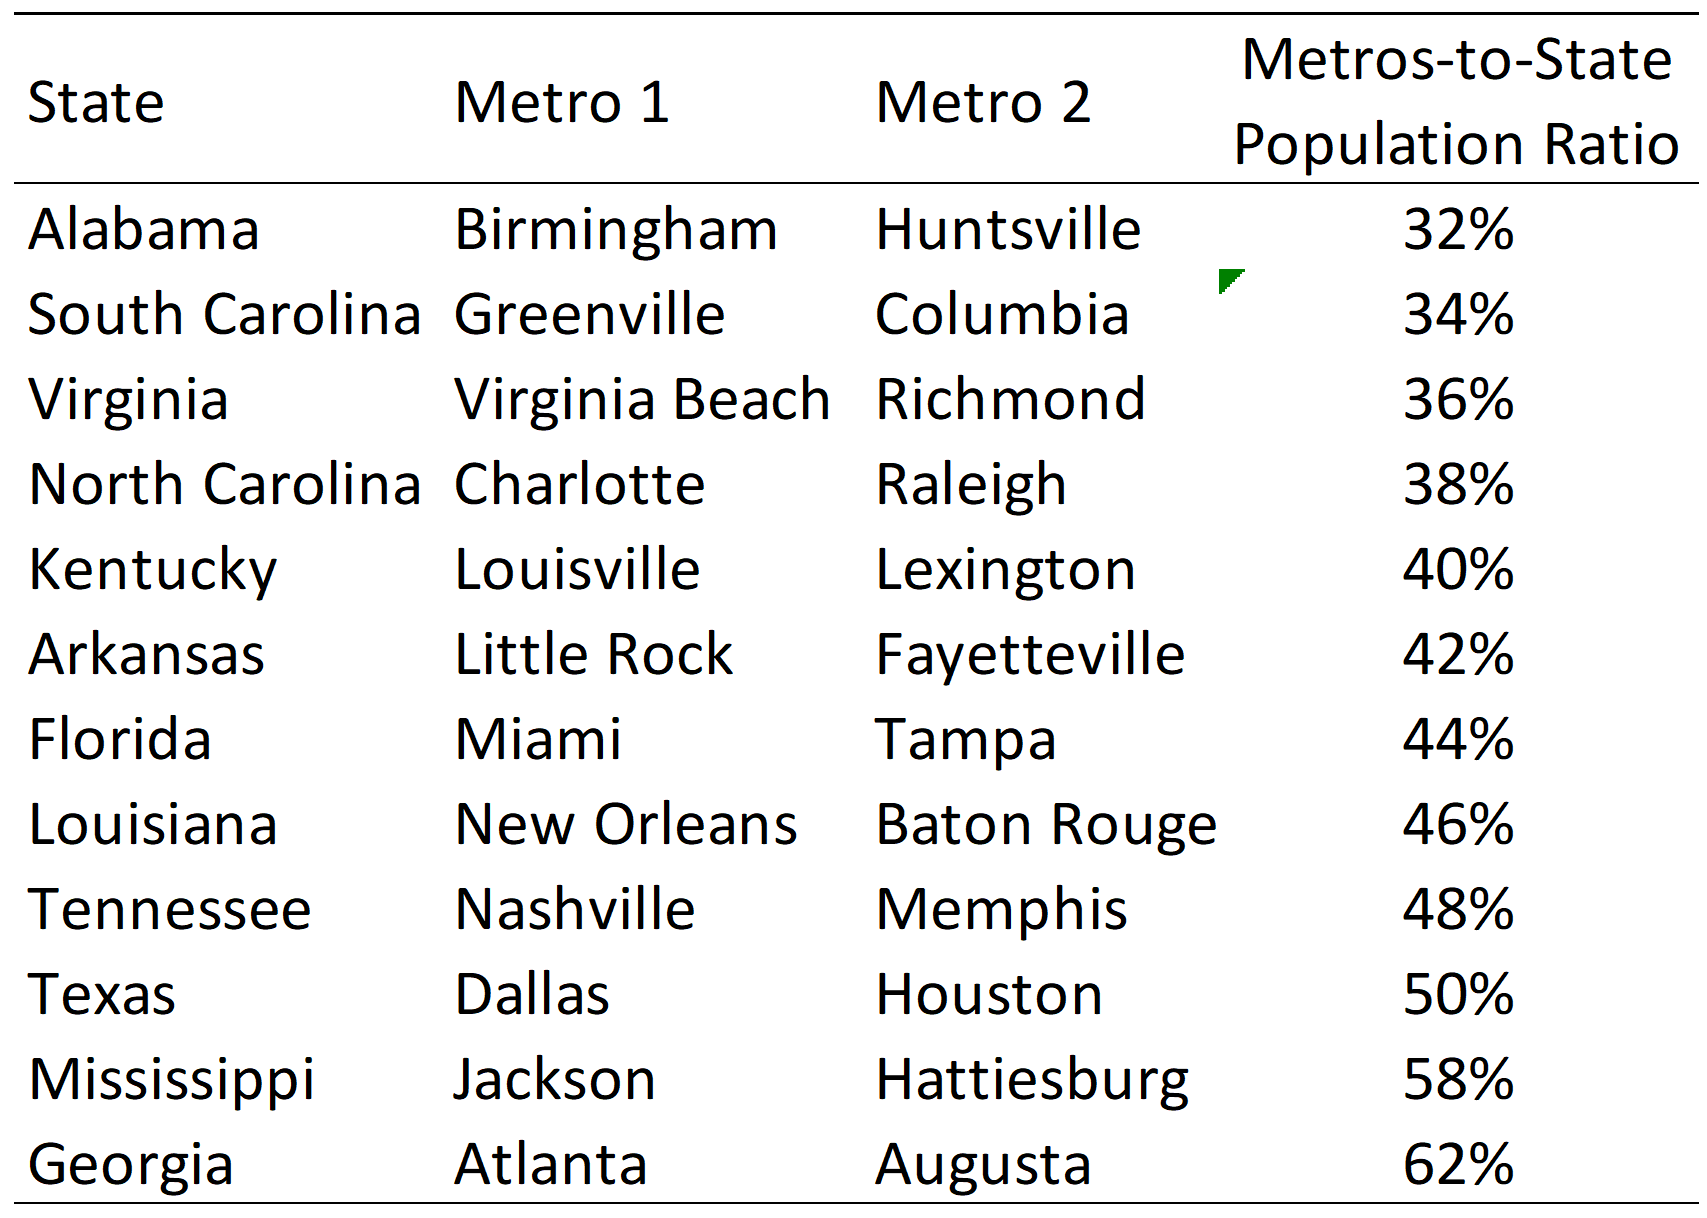 Southern-State Metro Population Ratios (2019 estimates)